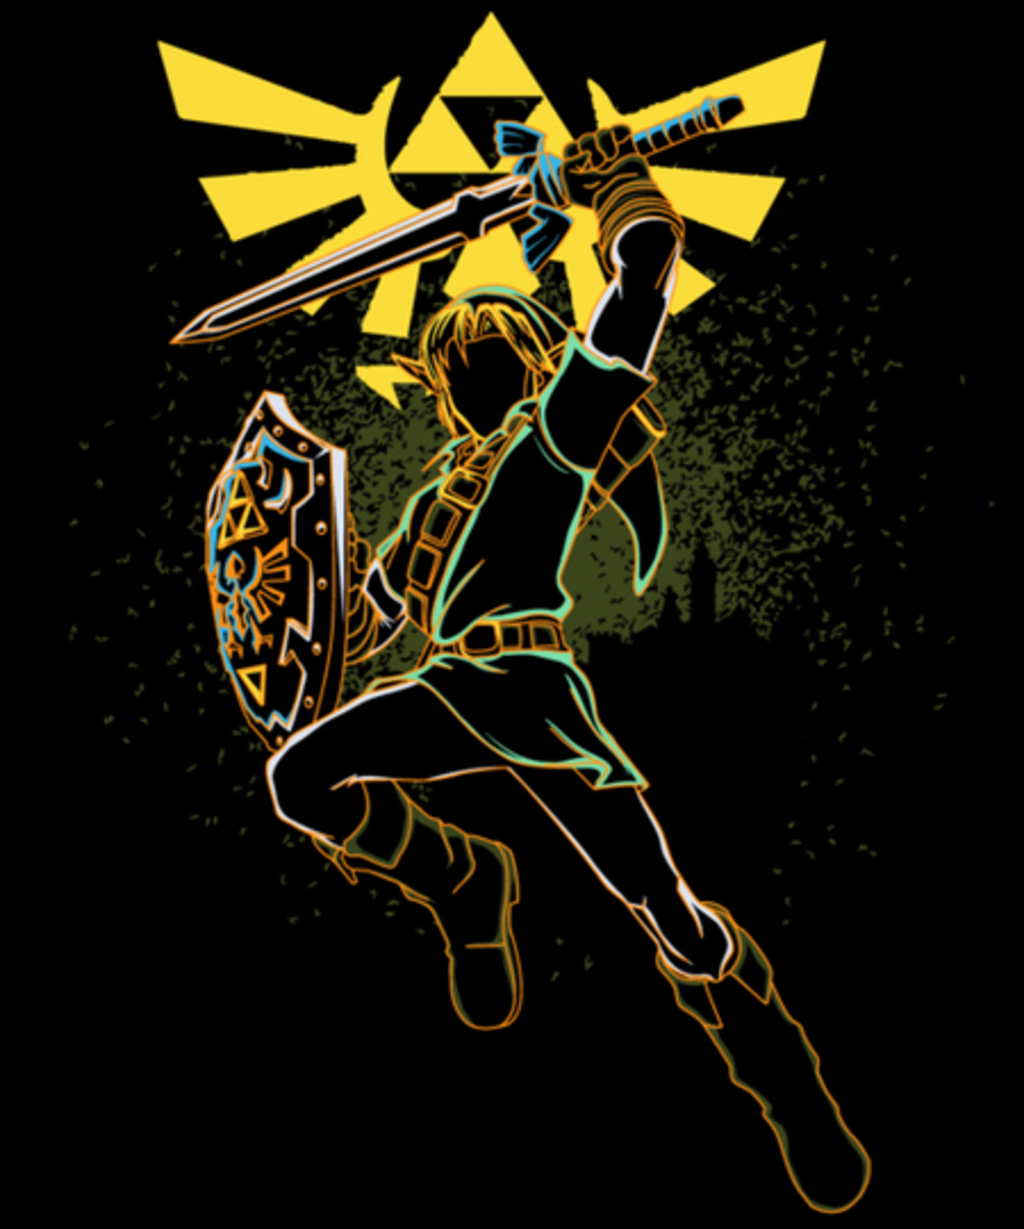 Qwertee: Shadow of courage